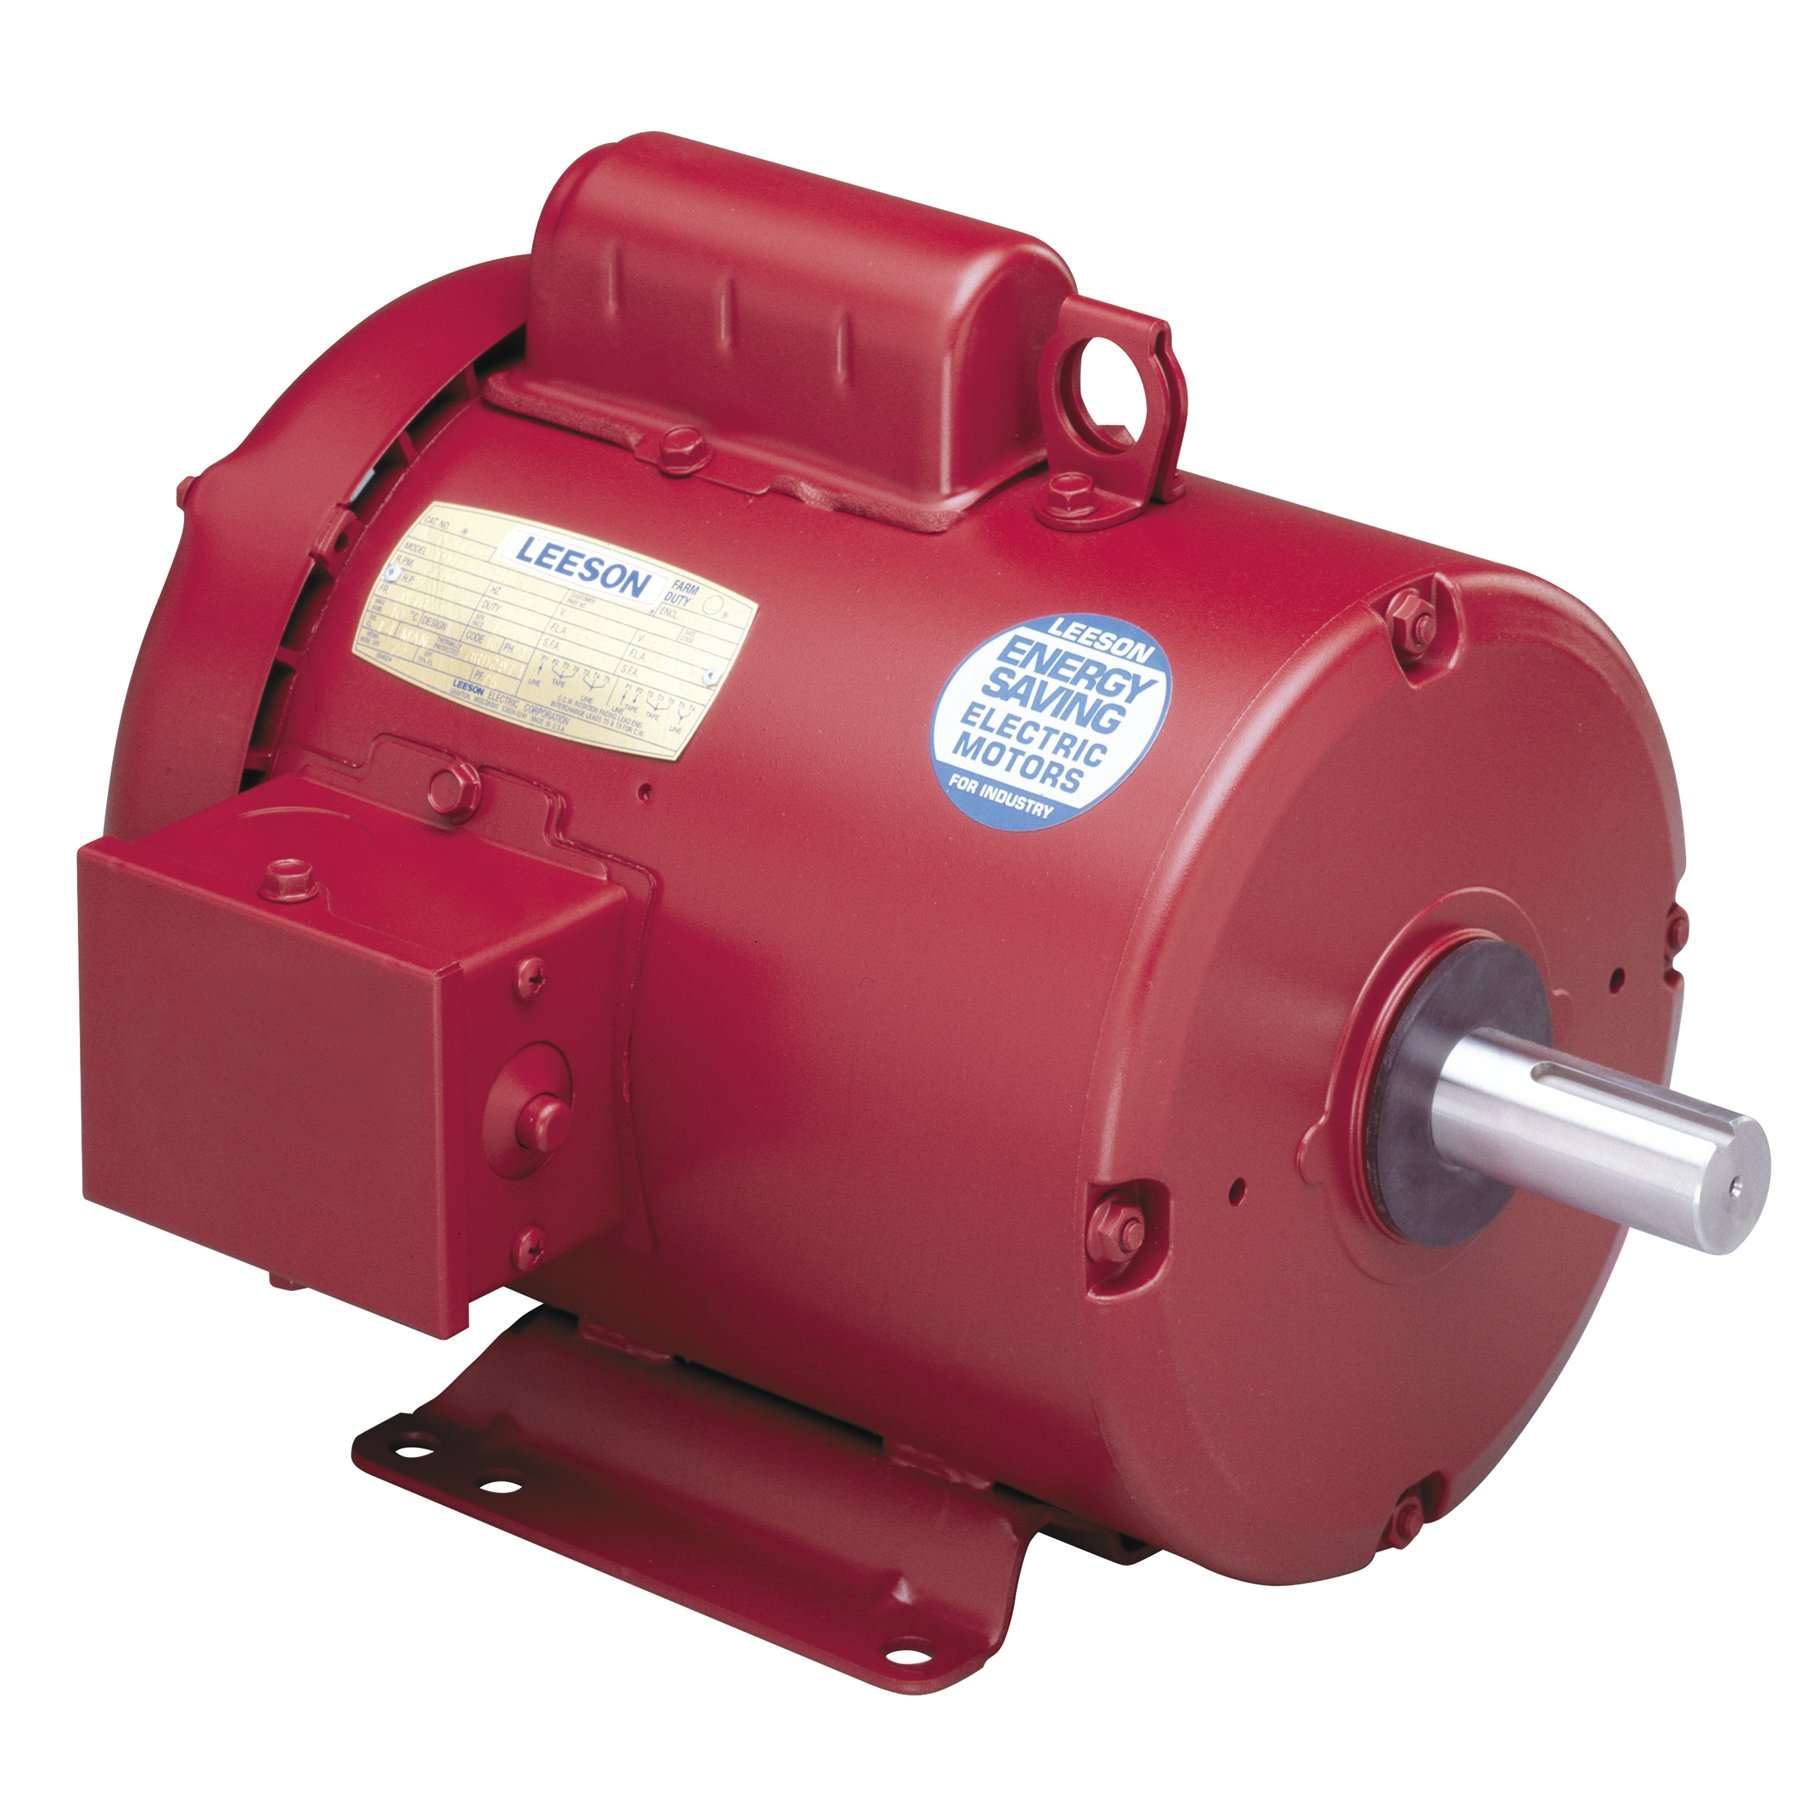 Electric Motors - Huge Savings! Save up to 12% | Electrical Hardware on air compressor with 220v wiring, single phase compressor wiring diagram, air compressor electrical diagram, air compressor power diagram, air compressor installation diagram, air compressor 220v wiring-diagram, air compressor 240v wiring-diagram, dayton air compressor wiring diagram, craftsman air compressor wiring diagram, air compressor wiring 110, 220 air compressor wiring diagram, air compressor motor starter, truck air compressor air diagram, 2006 ford mustang ac wiring diagram, air compressor replacement motors, compressor start capacitor wiring diagram, air conditioning electrical wiring diagram, circuit diagram, sullair compressor wiring diagram, volt air compressor wiring diagram,